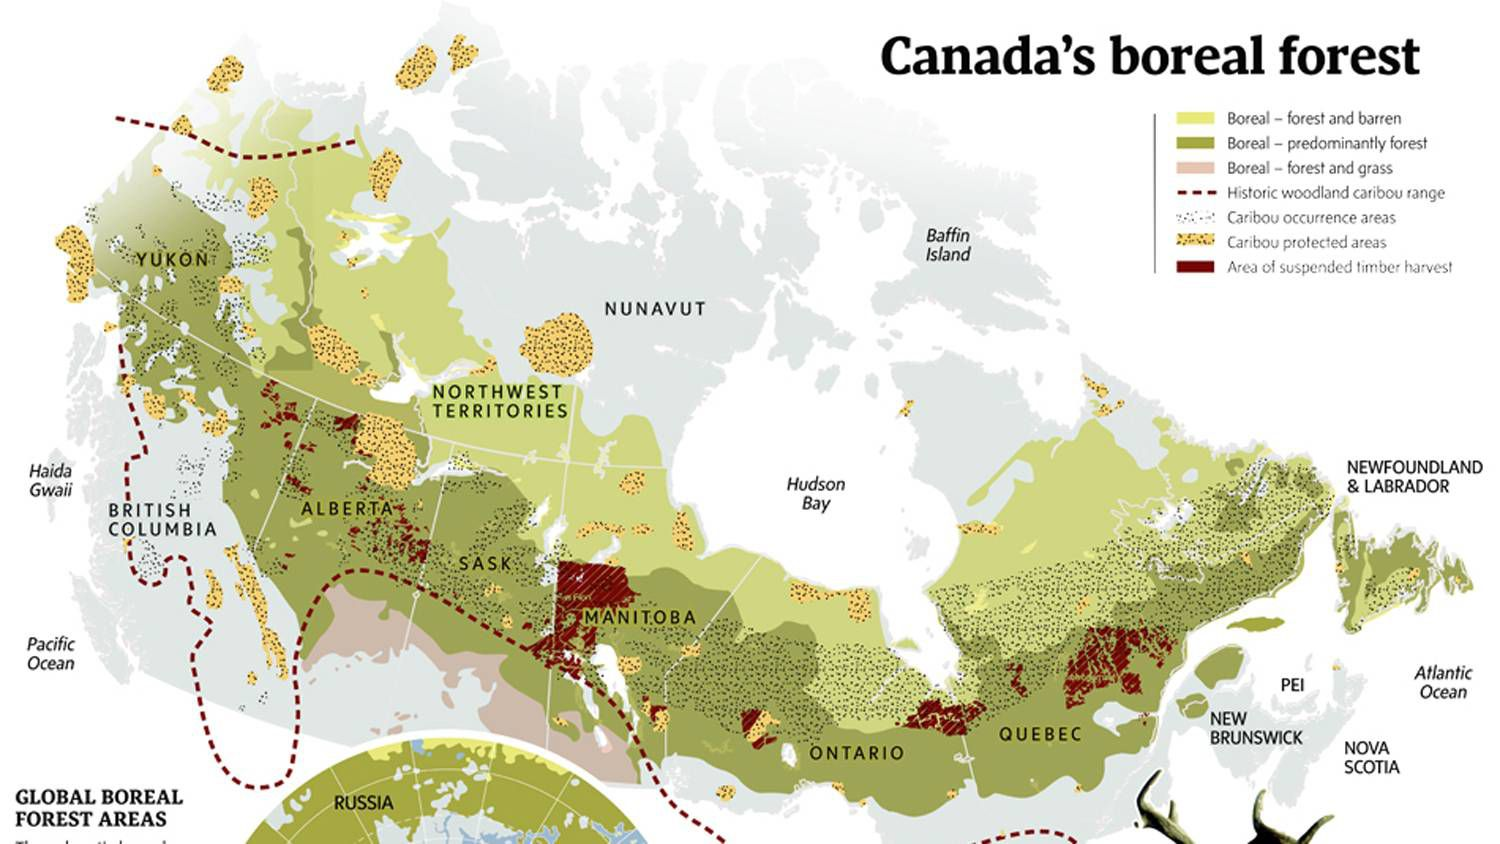 The Globe S Efforts To Protect The Boreal Forest The Globe And Mail